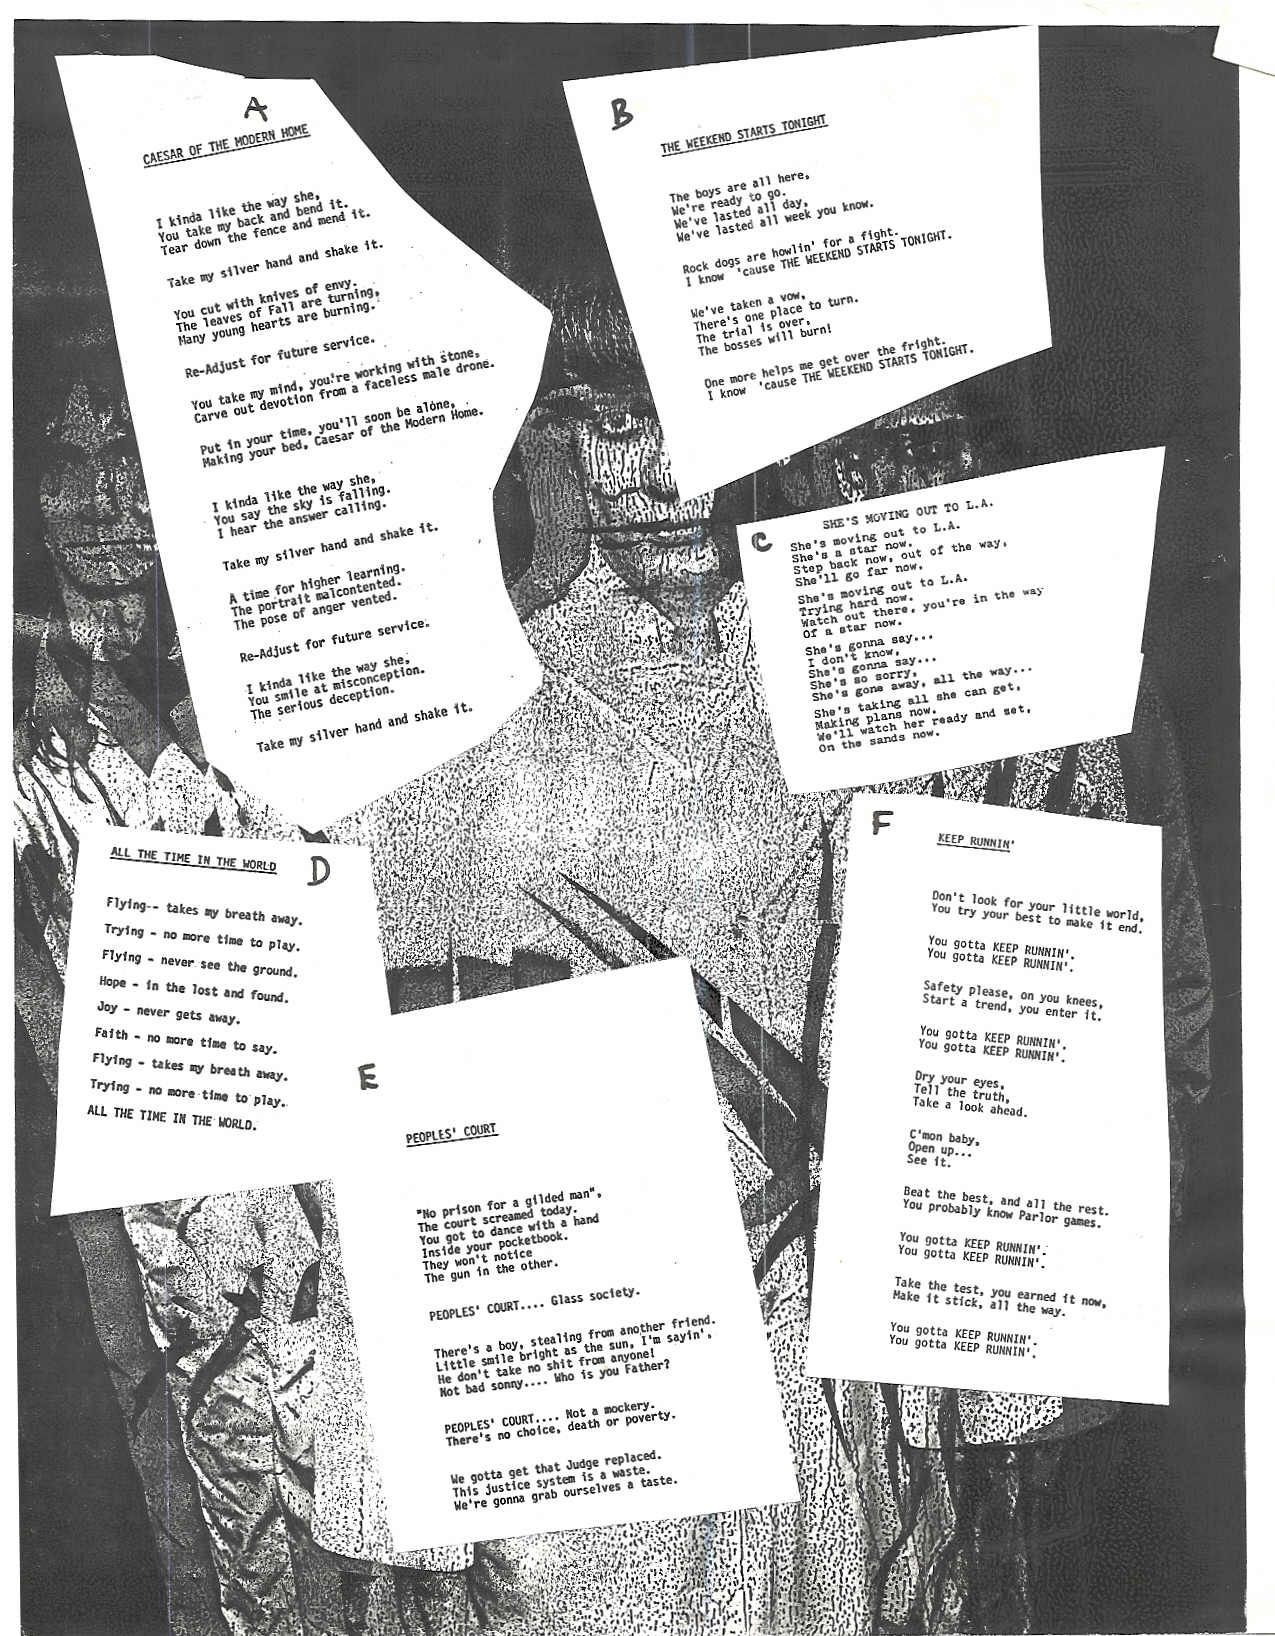 Lyric Sheet - The Loft Studio Recordings, Parousia